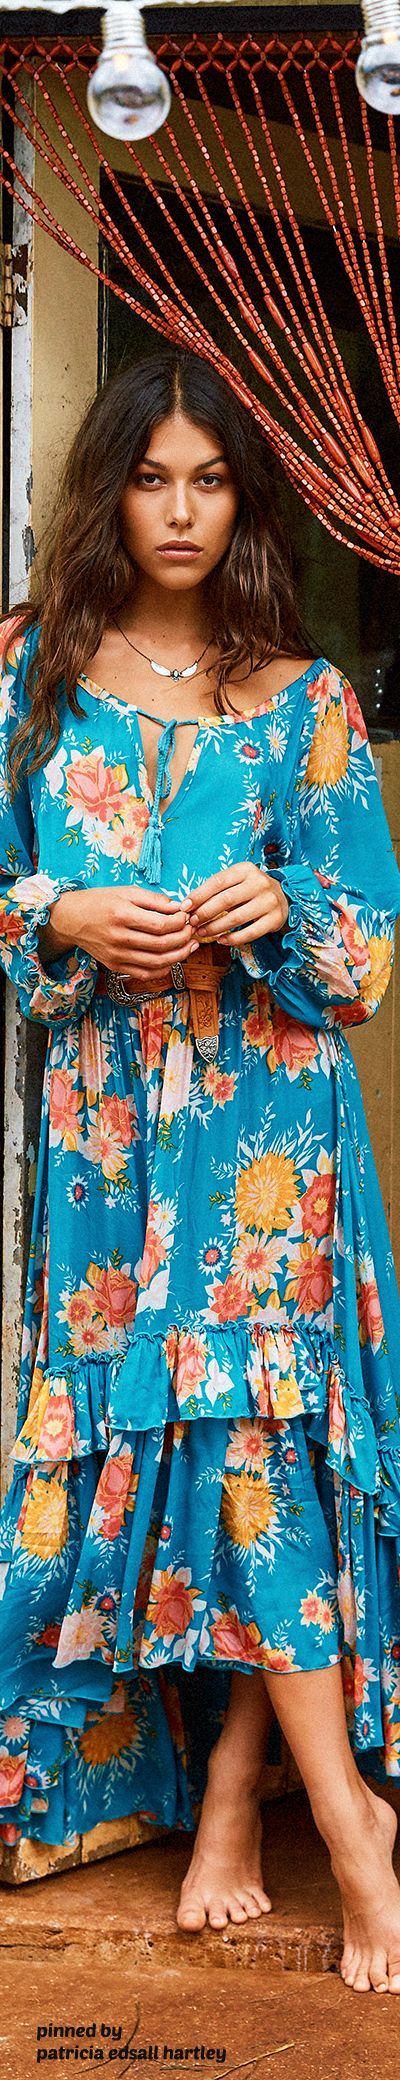 Romantic long boho dress in a great shade of blue with floral print and ruffled flounce